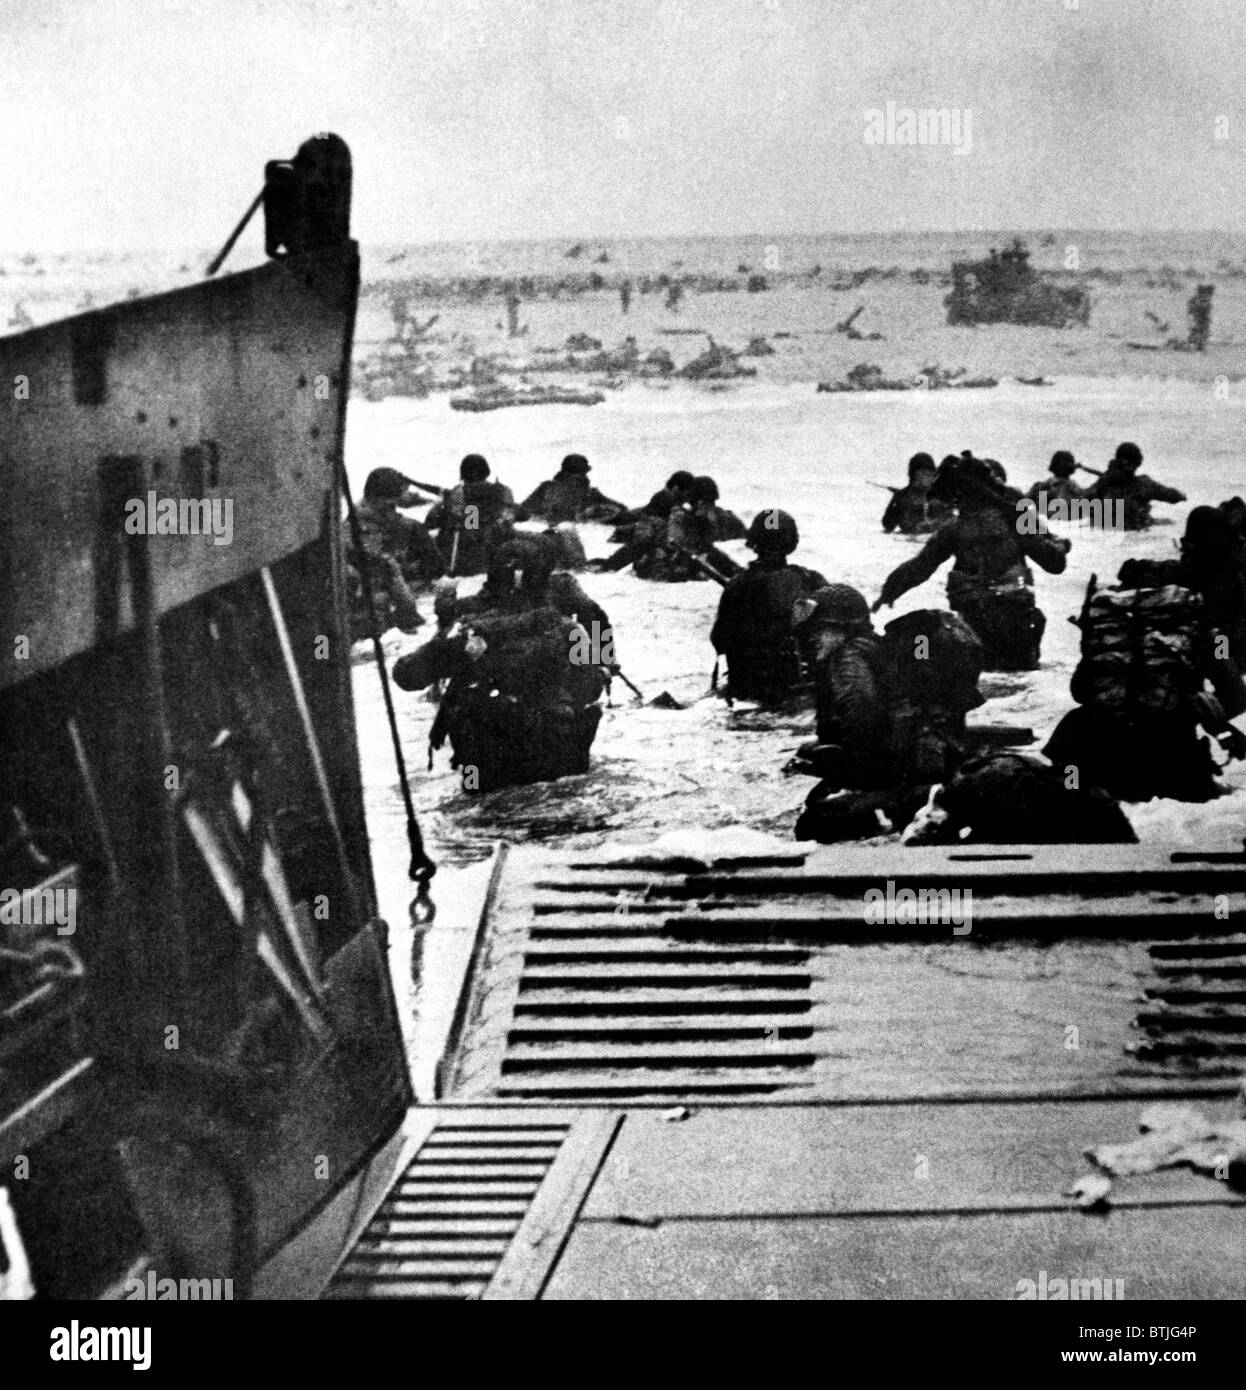 World War II: D-Day, the Invasion of Normandy, June 6, 1944. - Stock Image